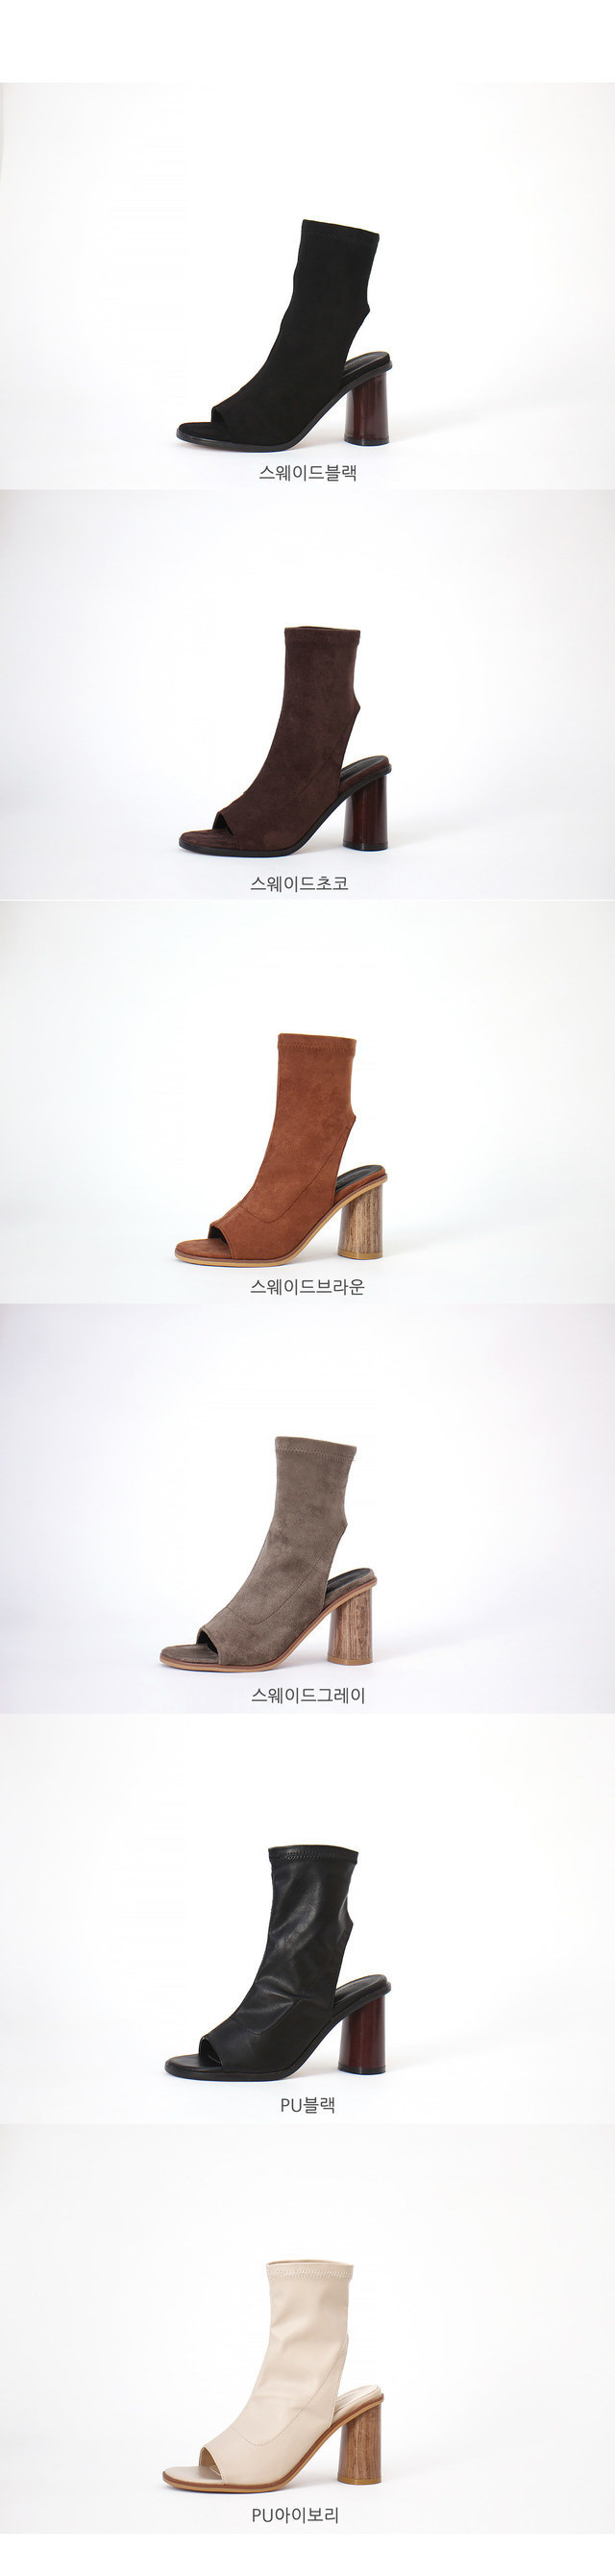 Toowong Sachs Ankle Boots